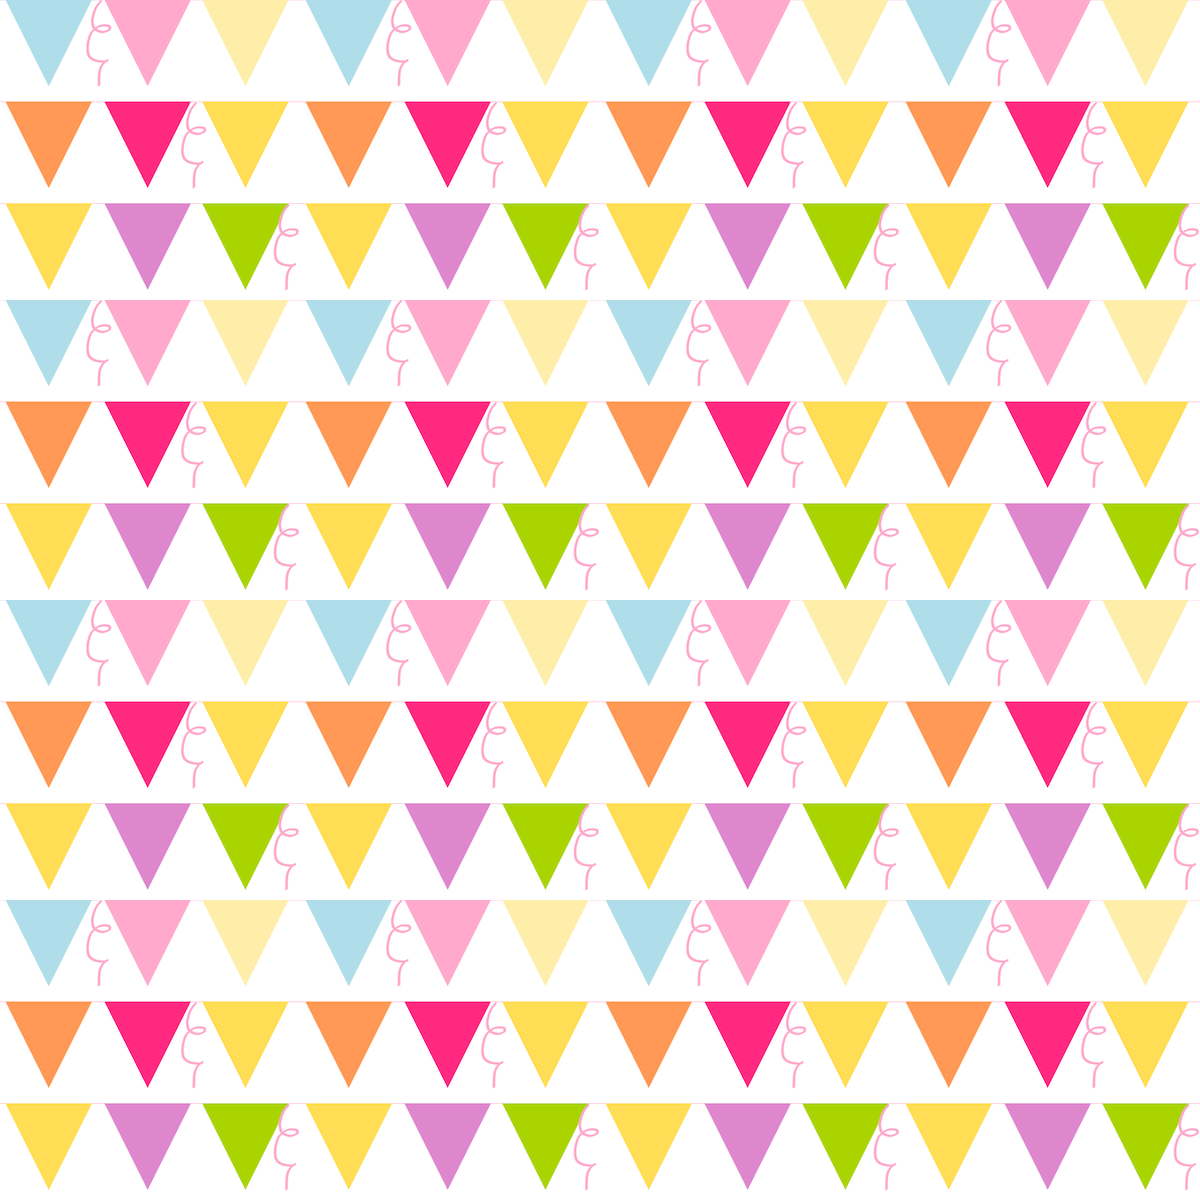 Cute Scrapbook Paper Patterns bunting scrapbooking paper